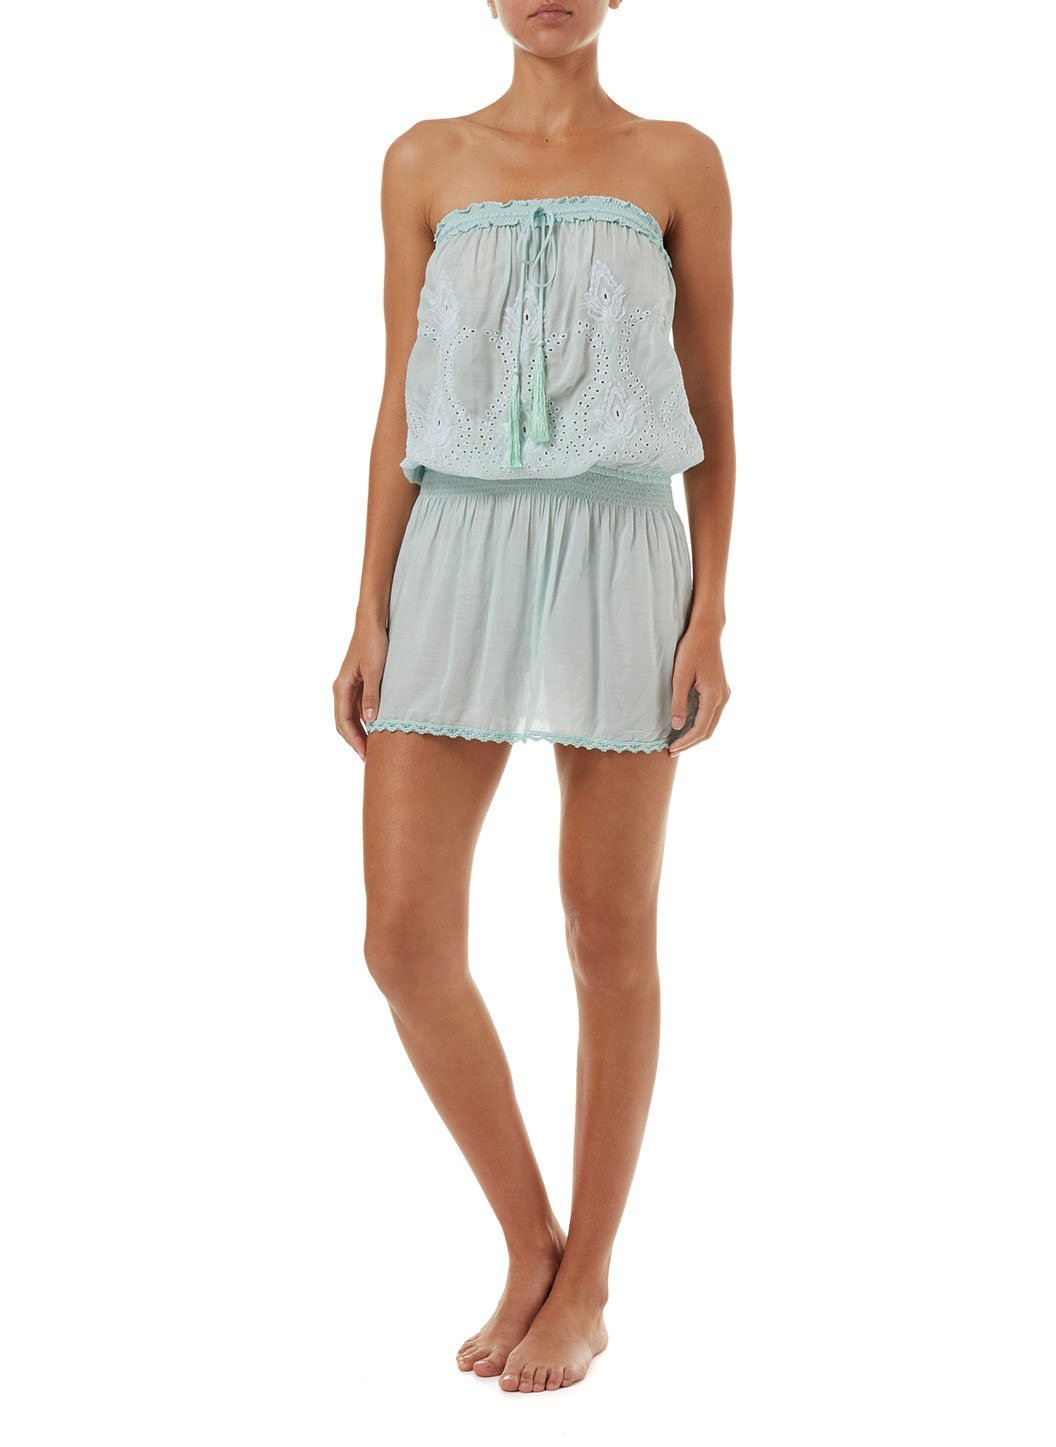 fruley mint bandeau embroidered short beach dress 2019 F